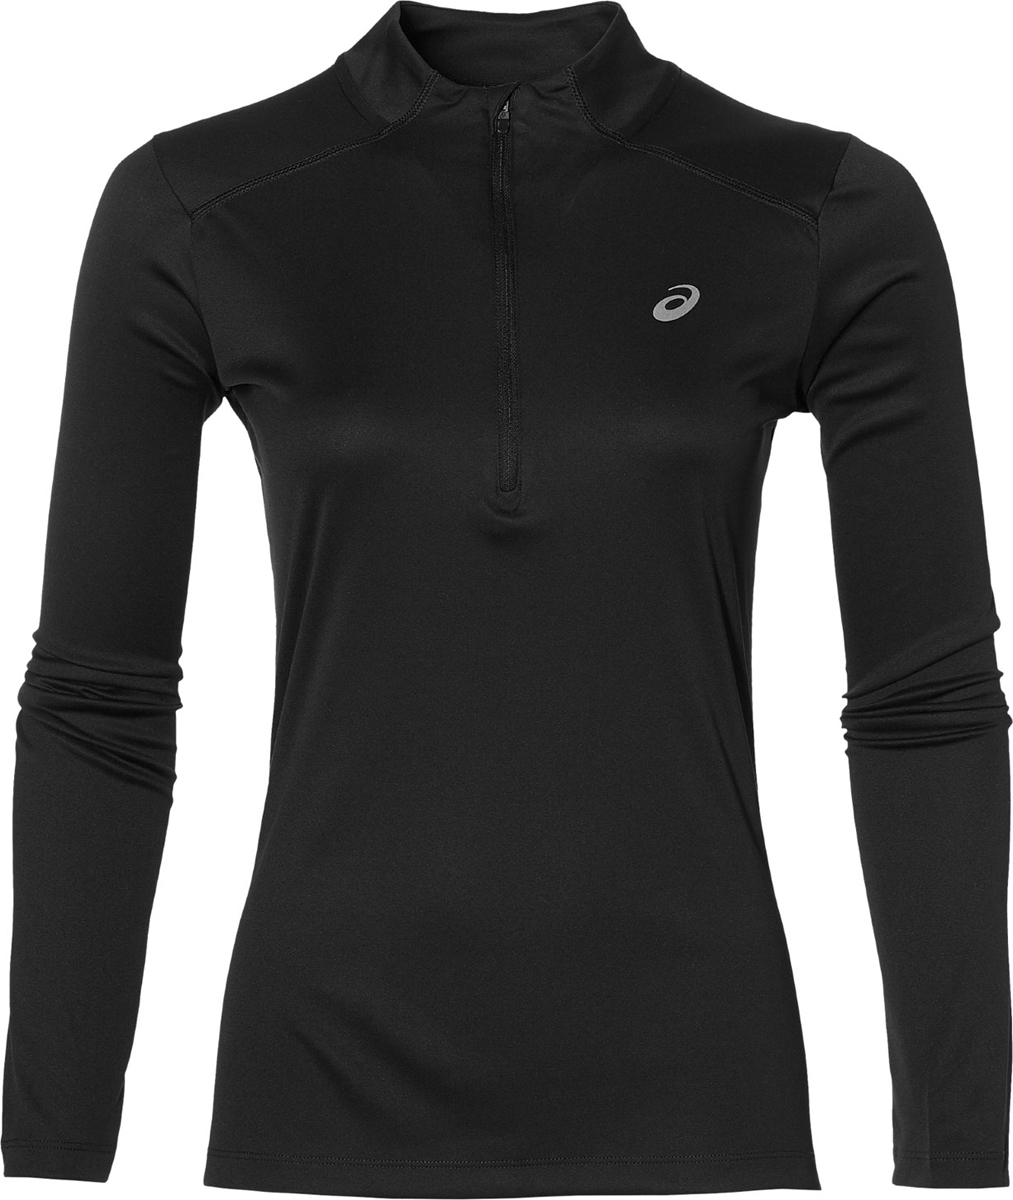 Лонгслив женский Asics LS 1/2 Zip Top, цвет: черный. 134108-0904. Размер S (44) лонгслив для бега женский asics ess winter 1 2 zip цвет черный 134109 0904 размер xs 40 42